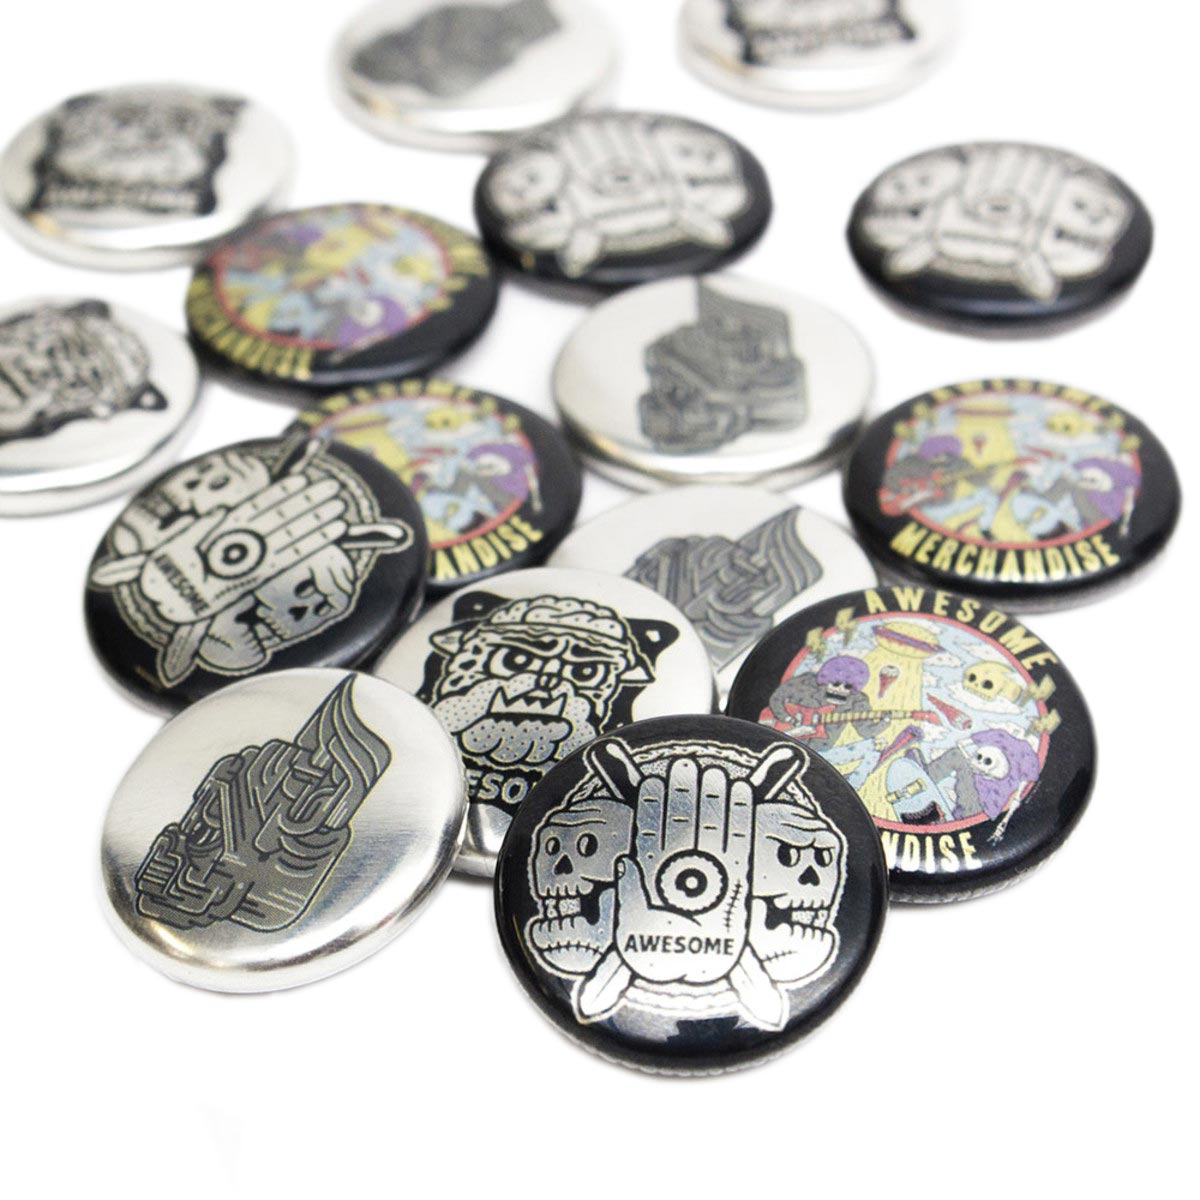 25mm Metallic Badges